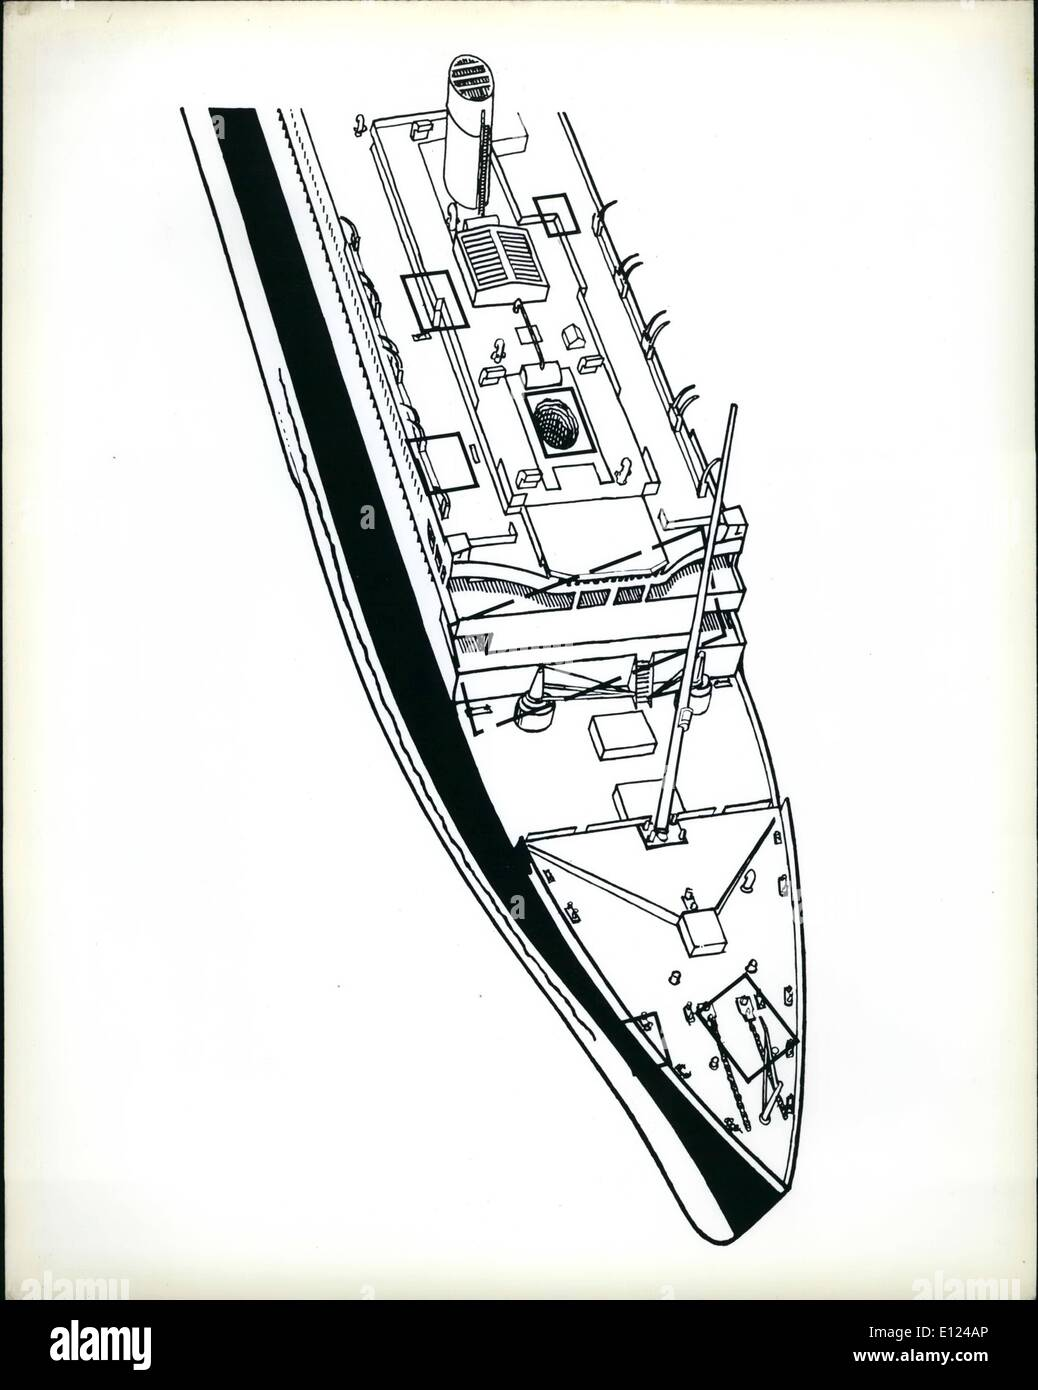 hight resolution of 09 1985 titanic hull diagram diagram of the forward portion of